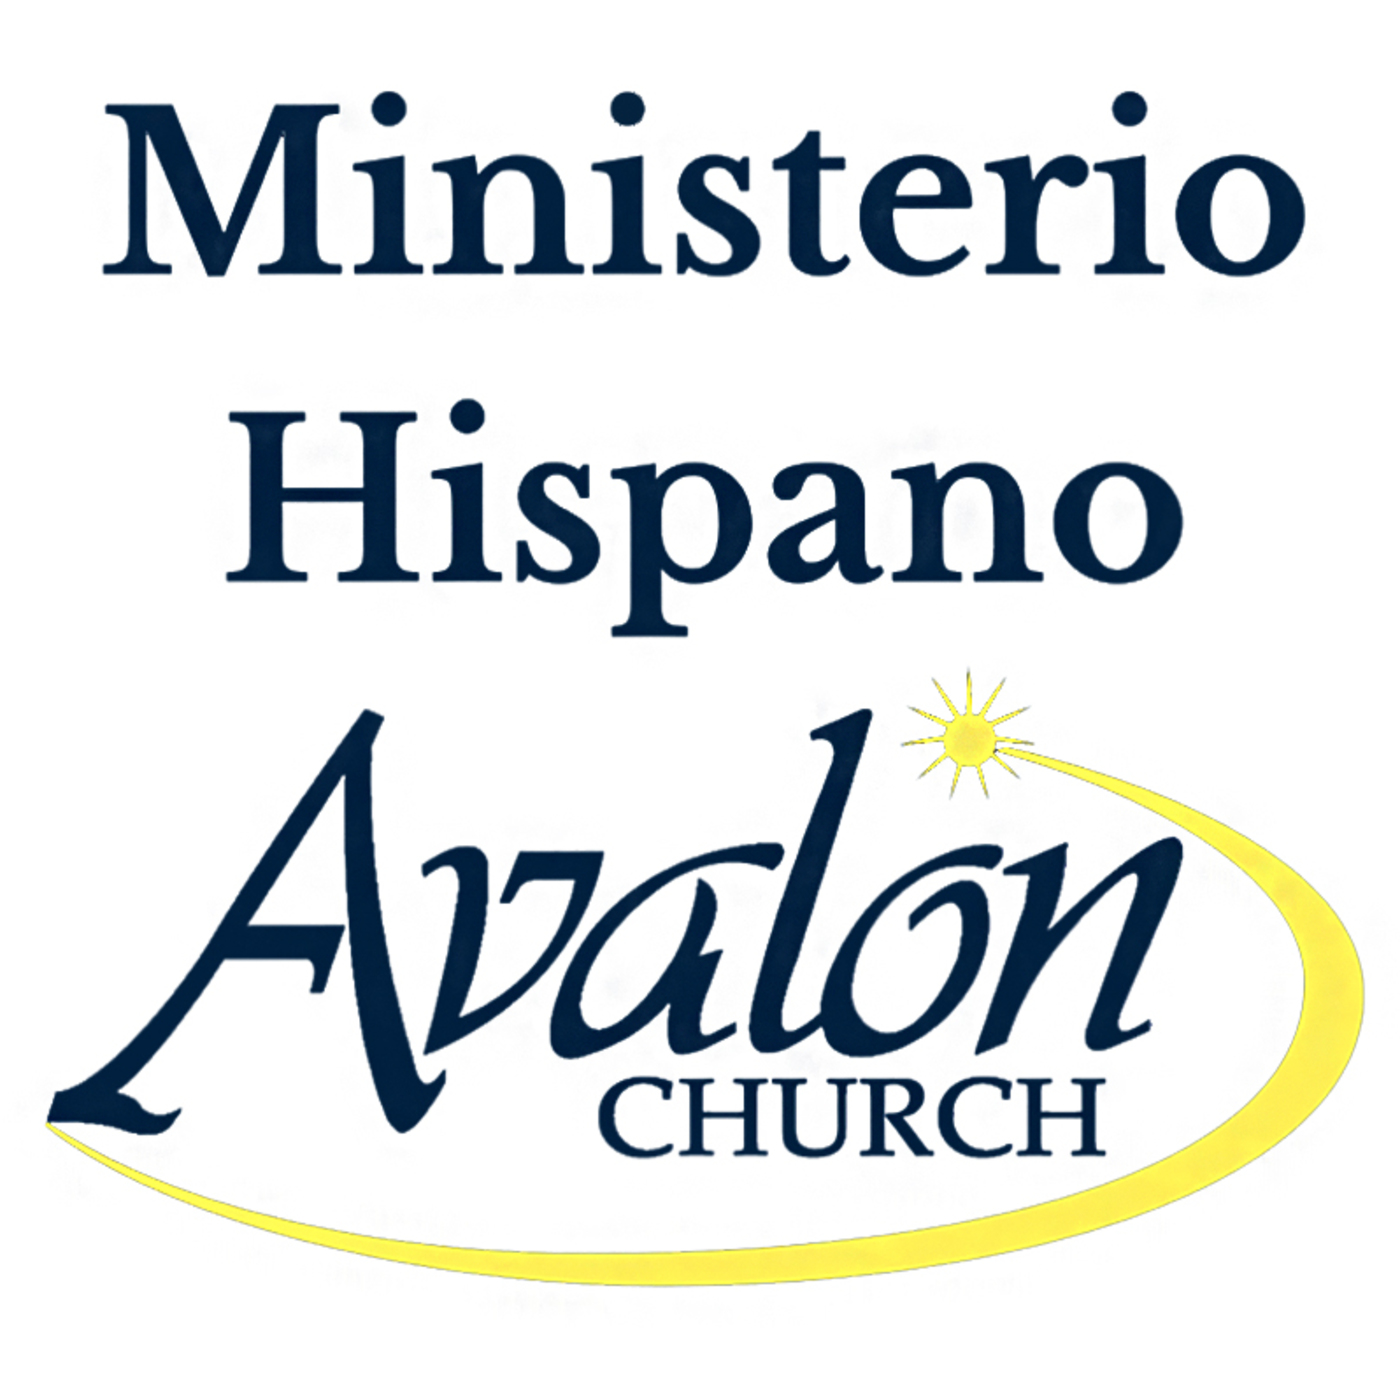 Ministerio Hispano Avalon Church